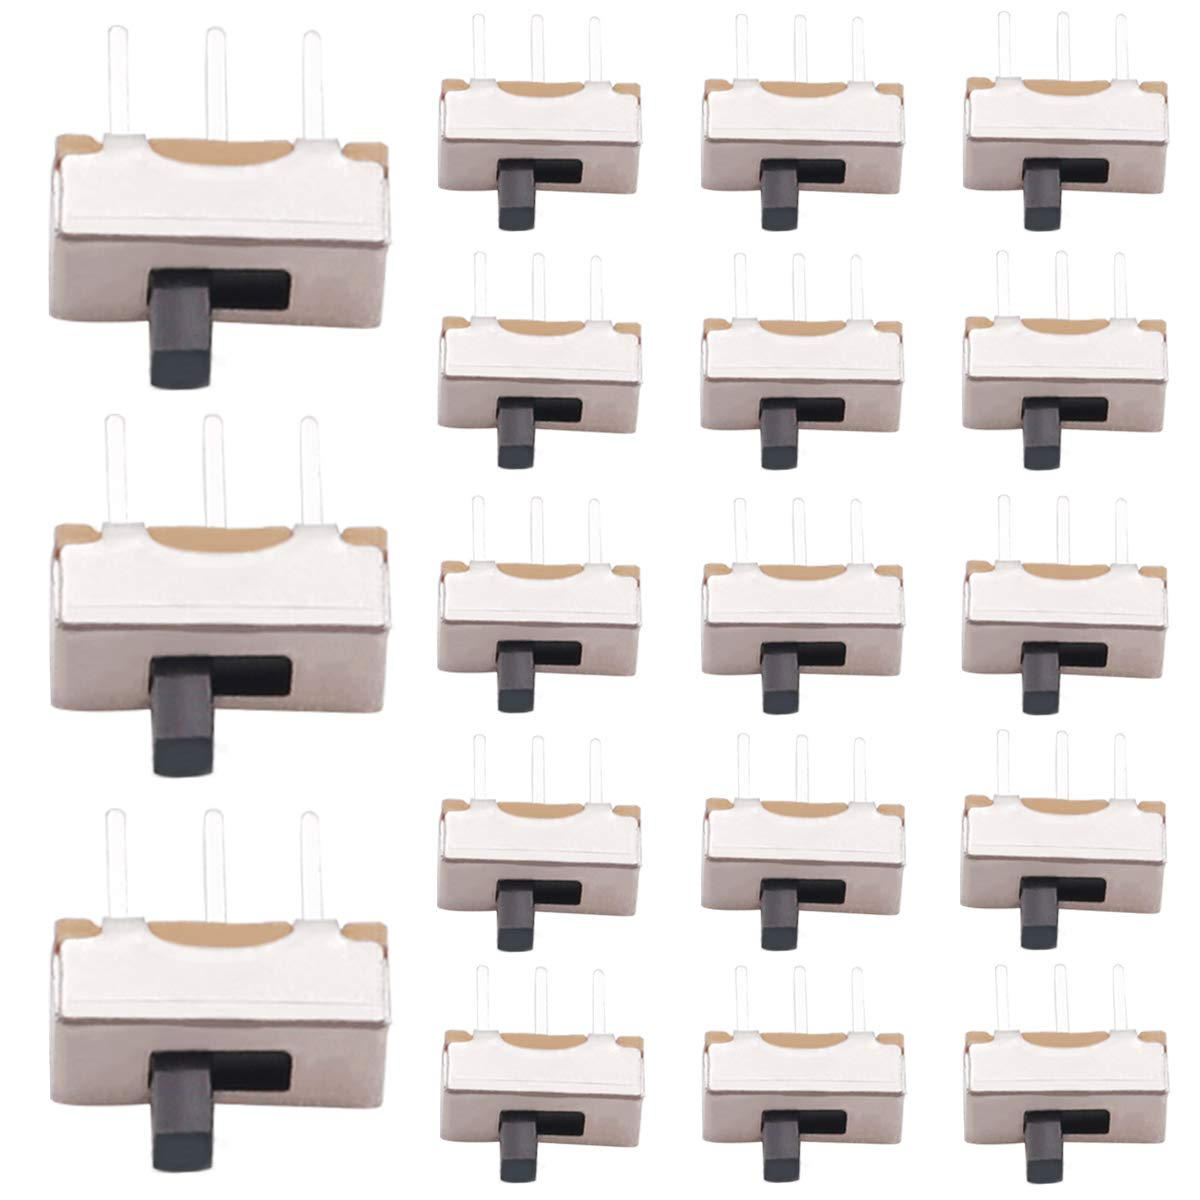 mxuteuk 60pcs Vertical Slide Switches Micro Pin 2 High Po 3 Knob Ranking TOP5 Directly managed store